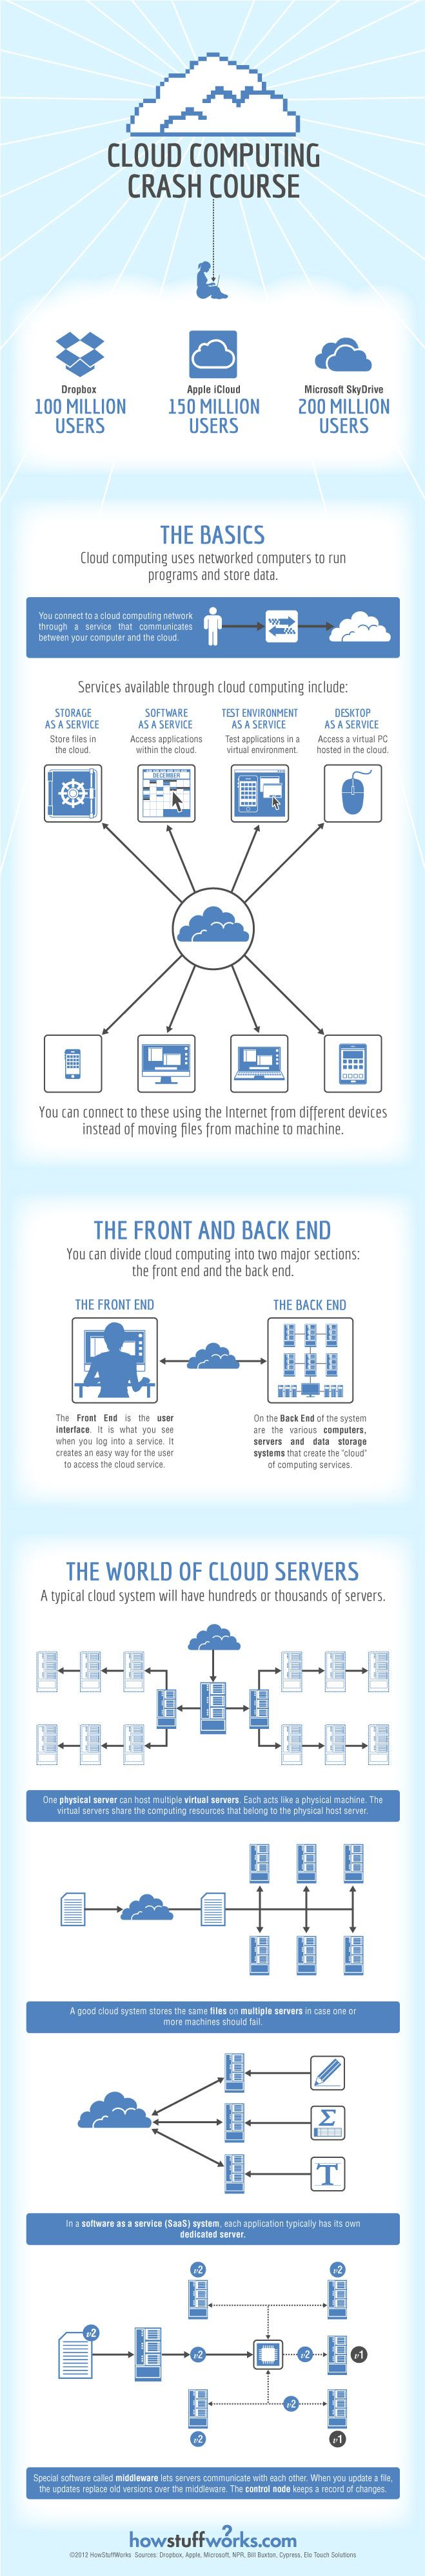 Cloud Computing Crash Course infographic